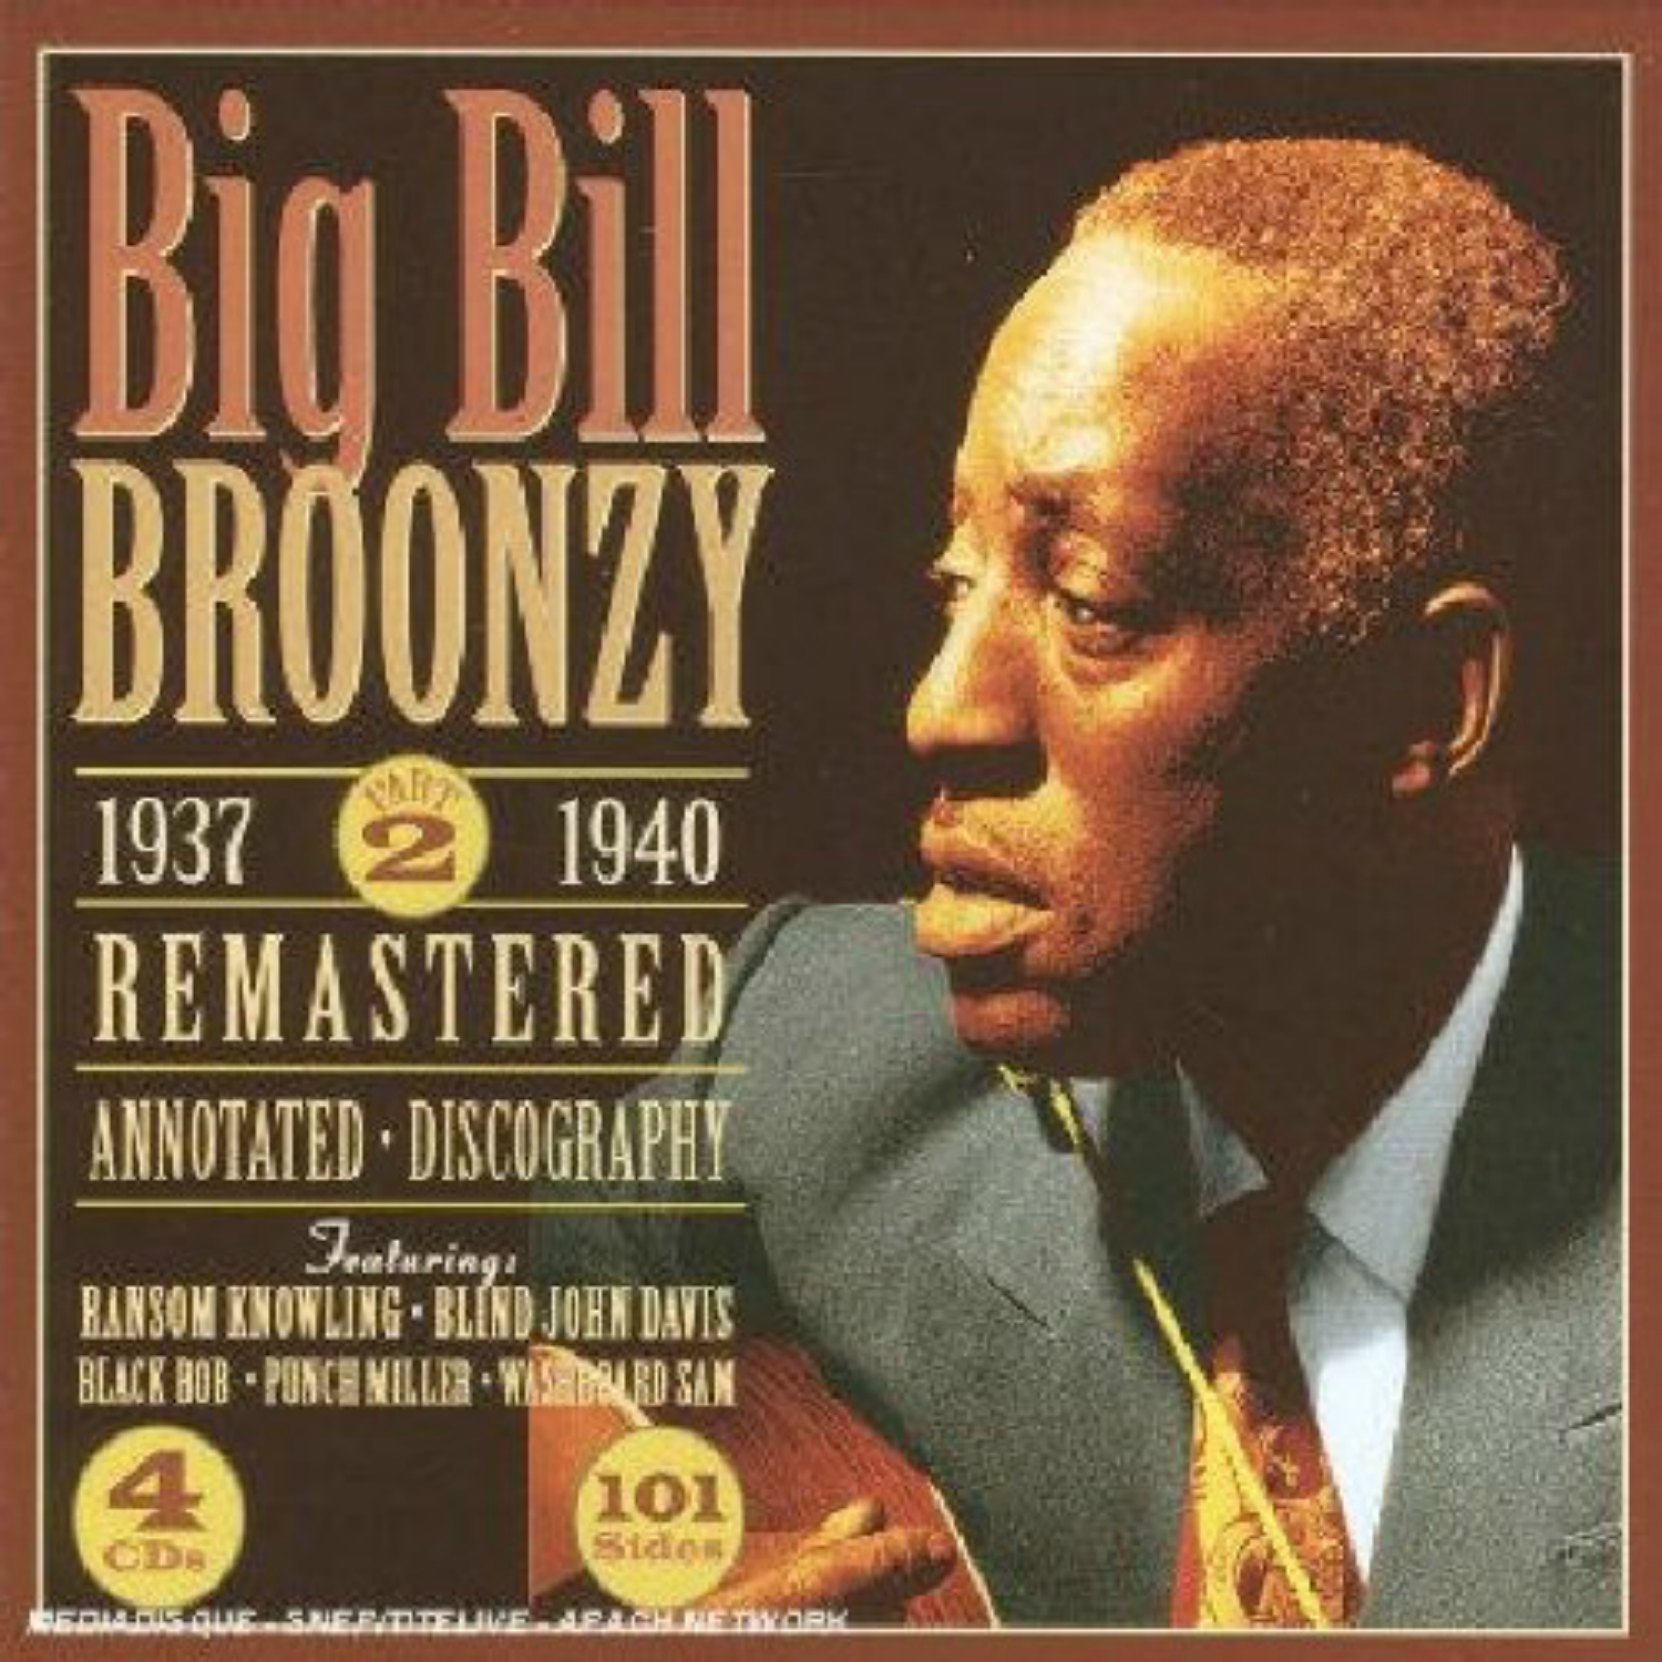 CD cover. Big Bill Broonzy, 1937-40, on JSP Records